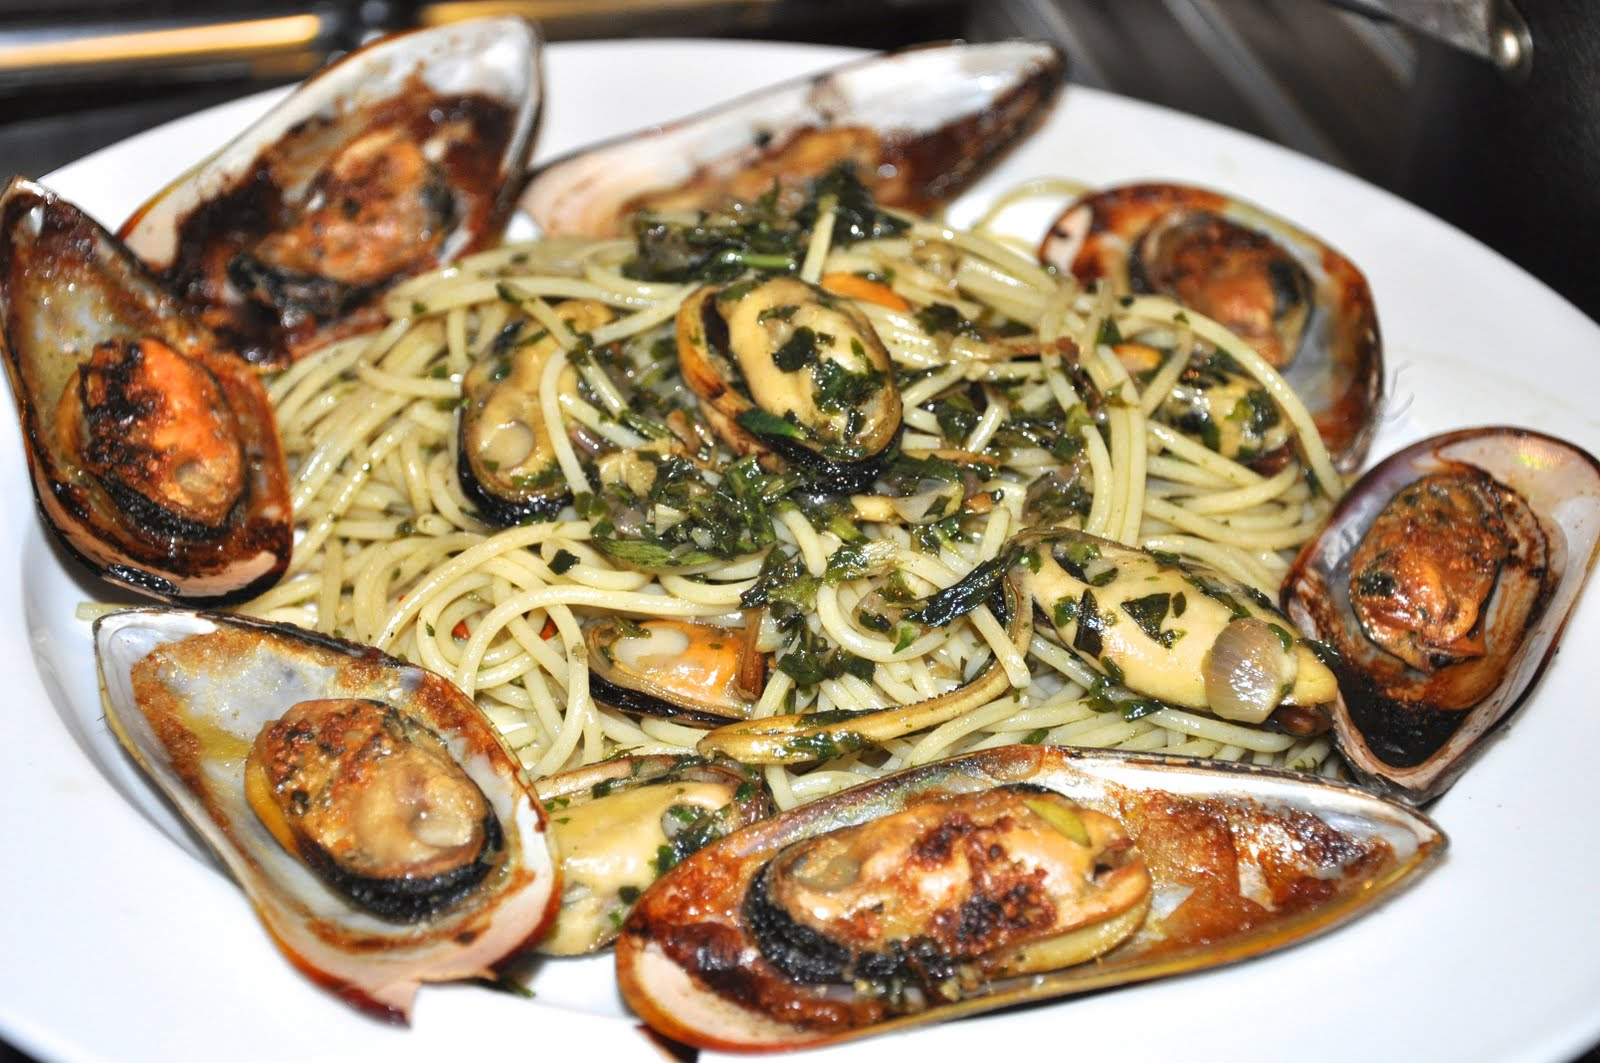 THE KITCHEN JOURNAL: Spaghetti With Mussels and Basil Pesto